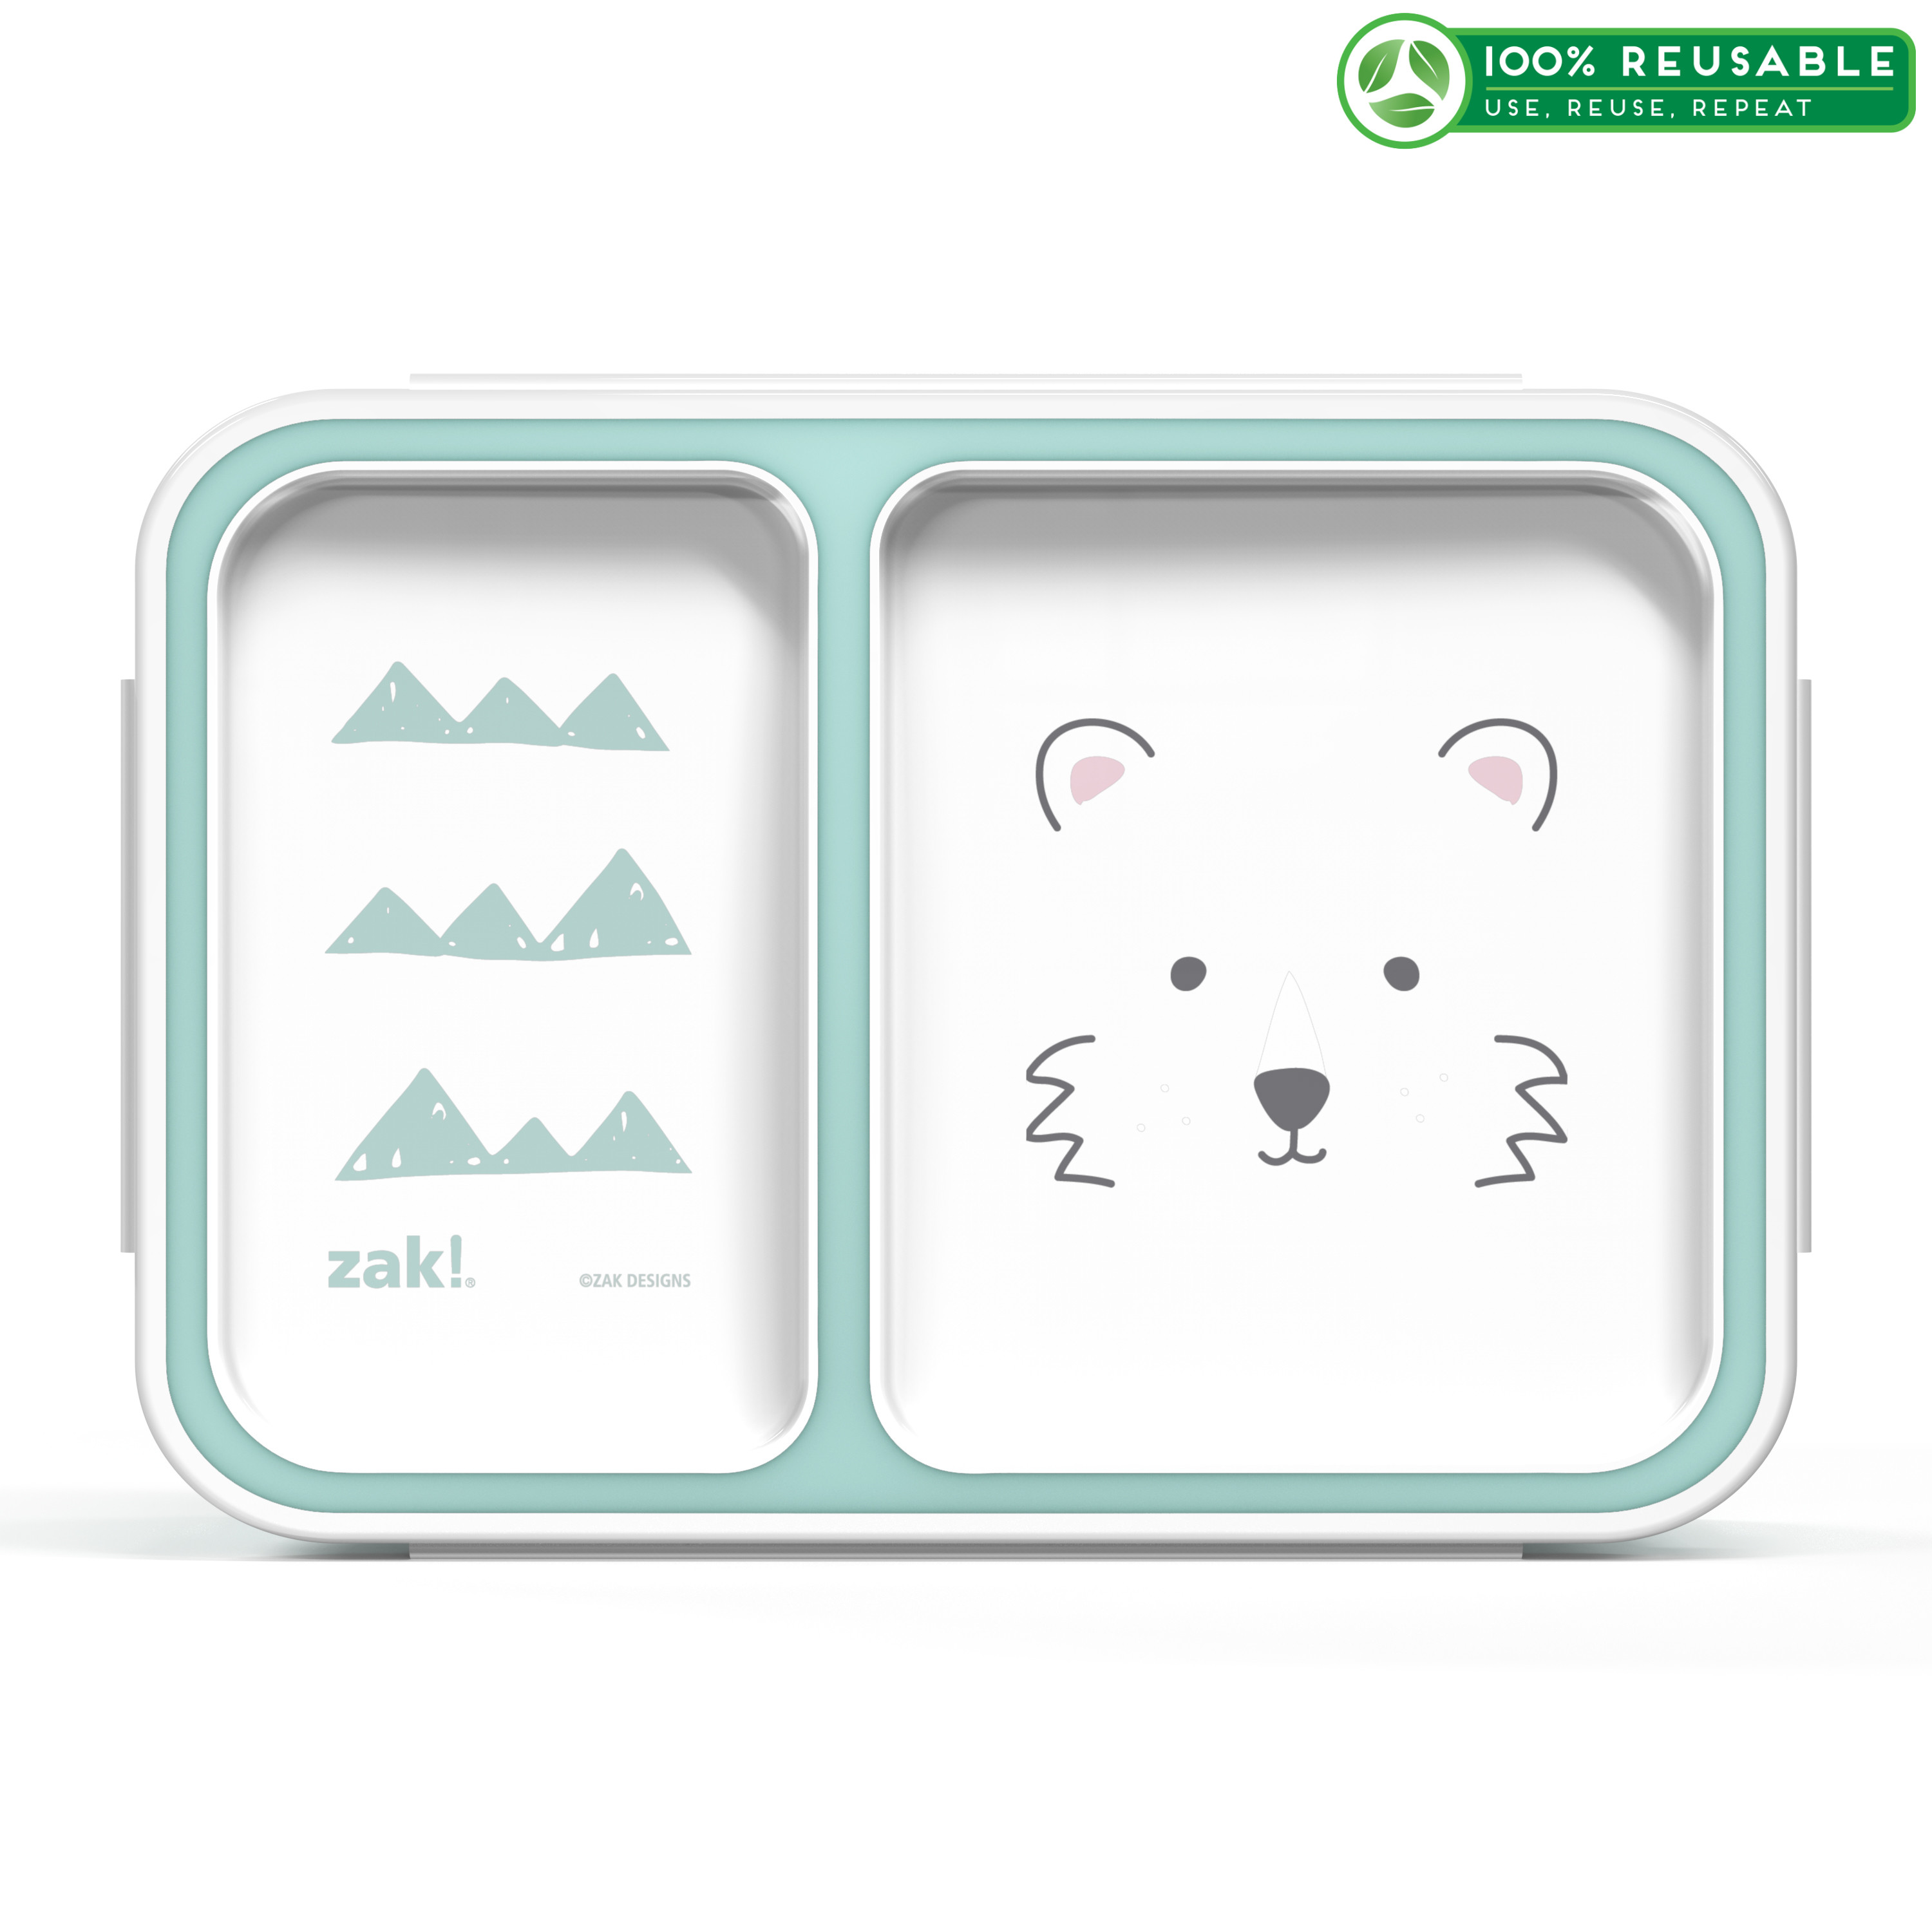 Soft Lines Dual-compartment Reusable Bento Box, Teddy Bears slideshow image 1